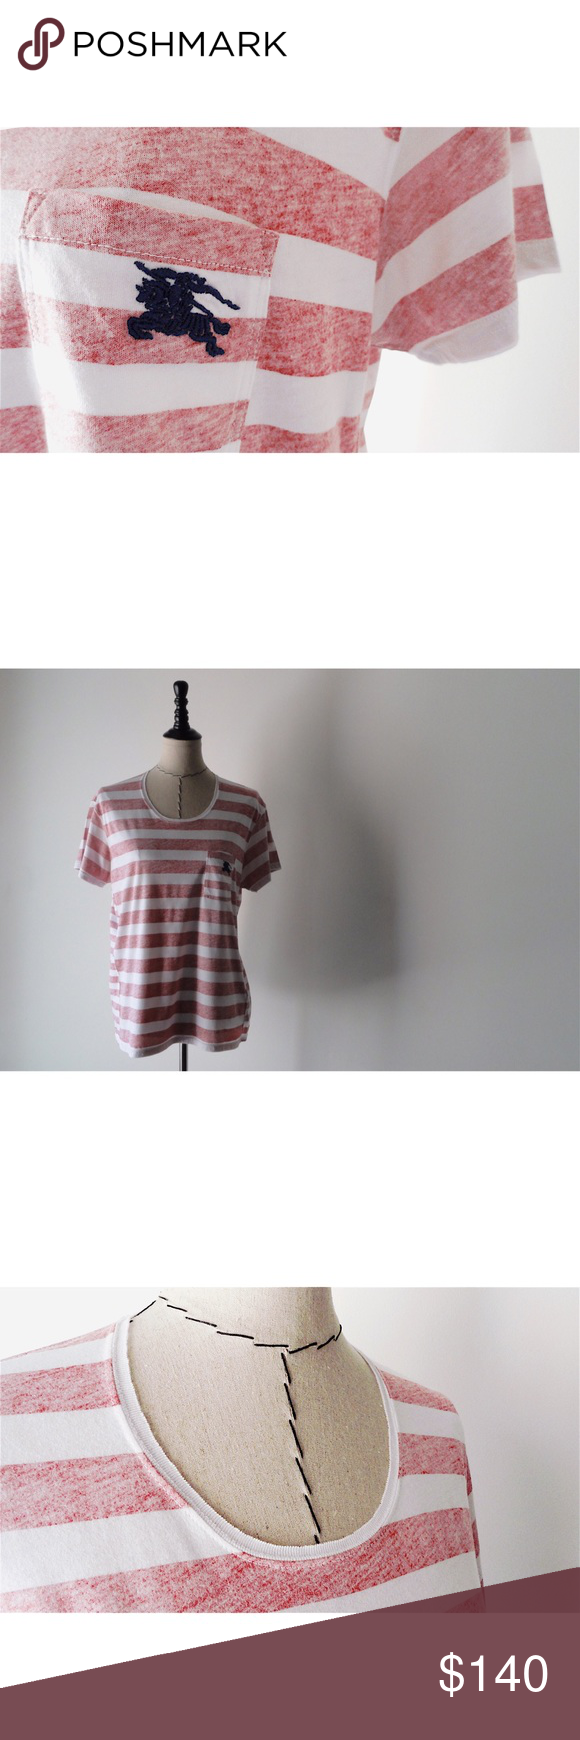 ⚡️FLASH⚡️NWT Burberry Faded Stripe Top NWT Burberry Brit Faded Stripe Cotton Top. Size Large. New With Tags. See Photos. Authentic Burberry. Relaxed fit top in faded stripe print. Cut from soft cotton jersey. Finished with a patch-style pocket with Burberry logo embroidered in navy. 100% Cotton. MSRP $195. Burberry Tops Tees - Short Sleeve